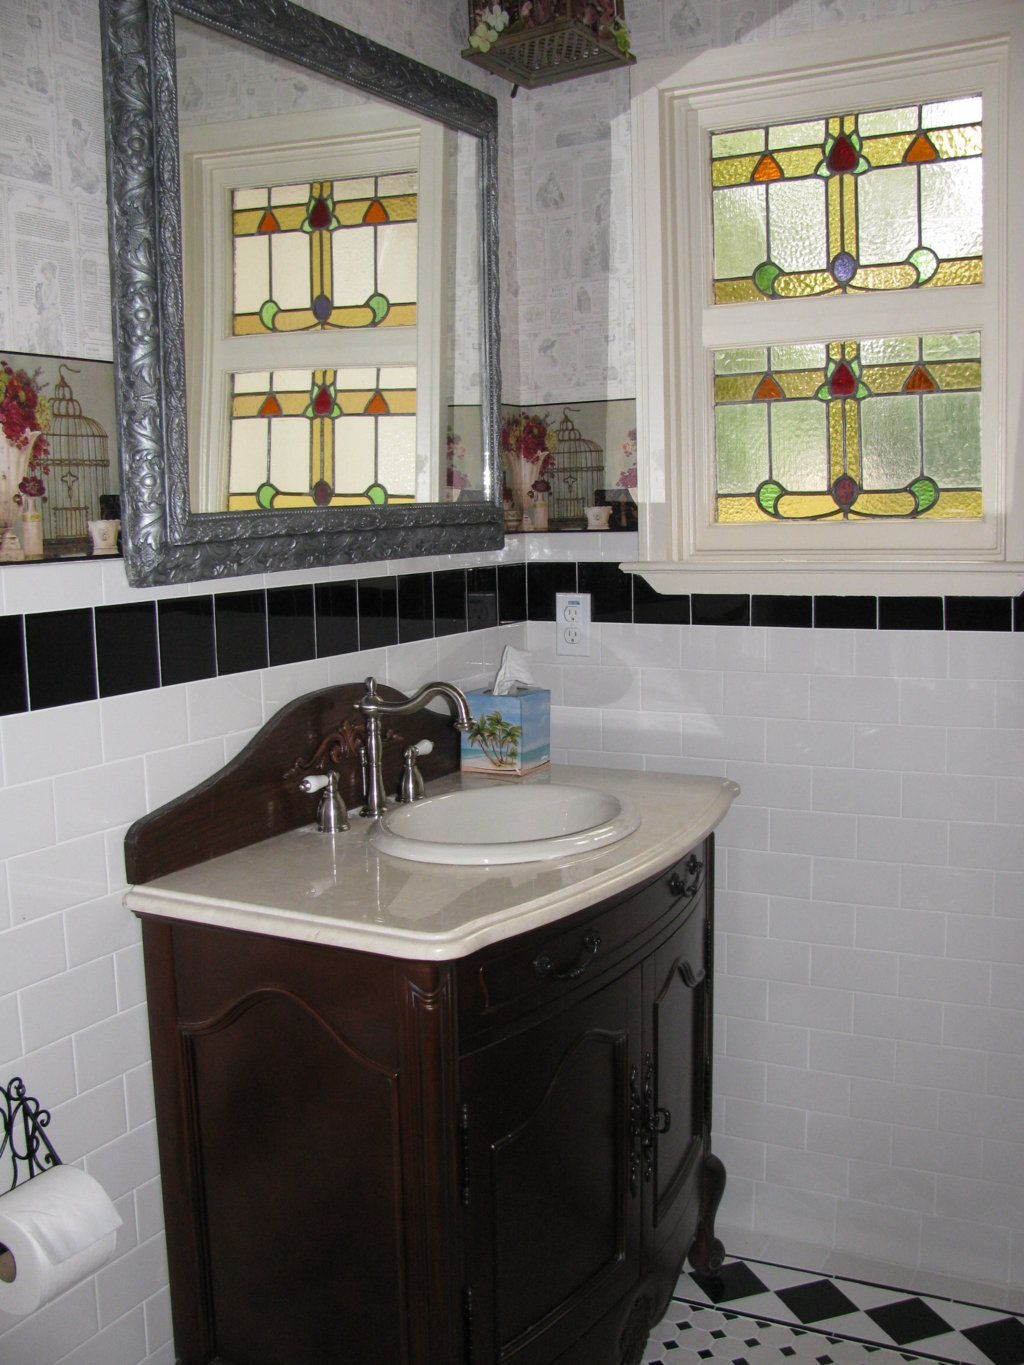 The Vintage Look In The Master Bath Includes A Floor Tile Pattern - 1920's floor tile patterns